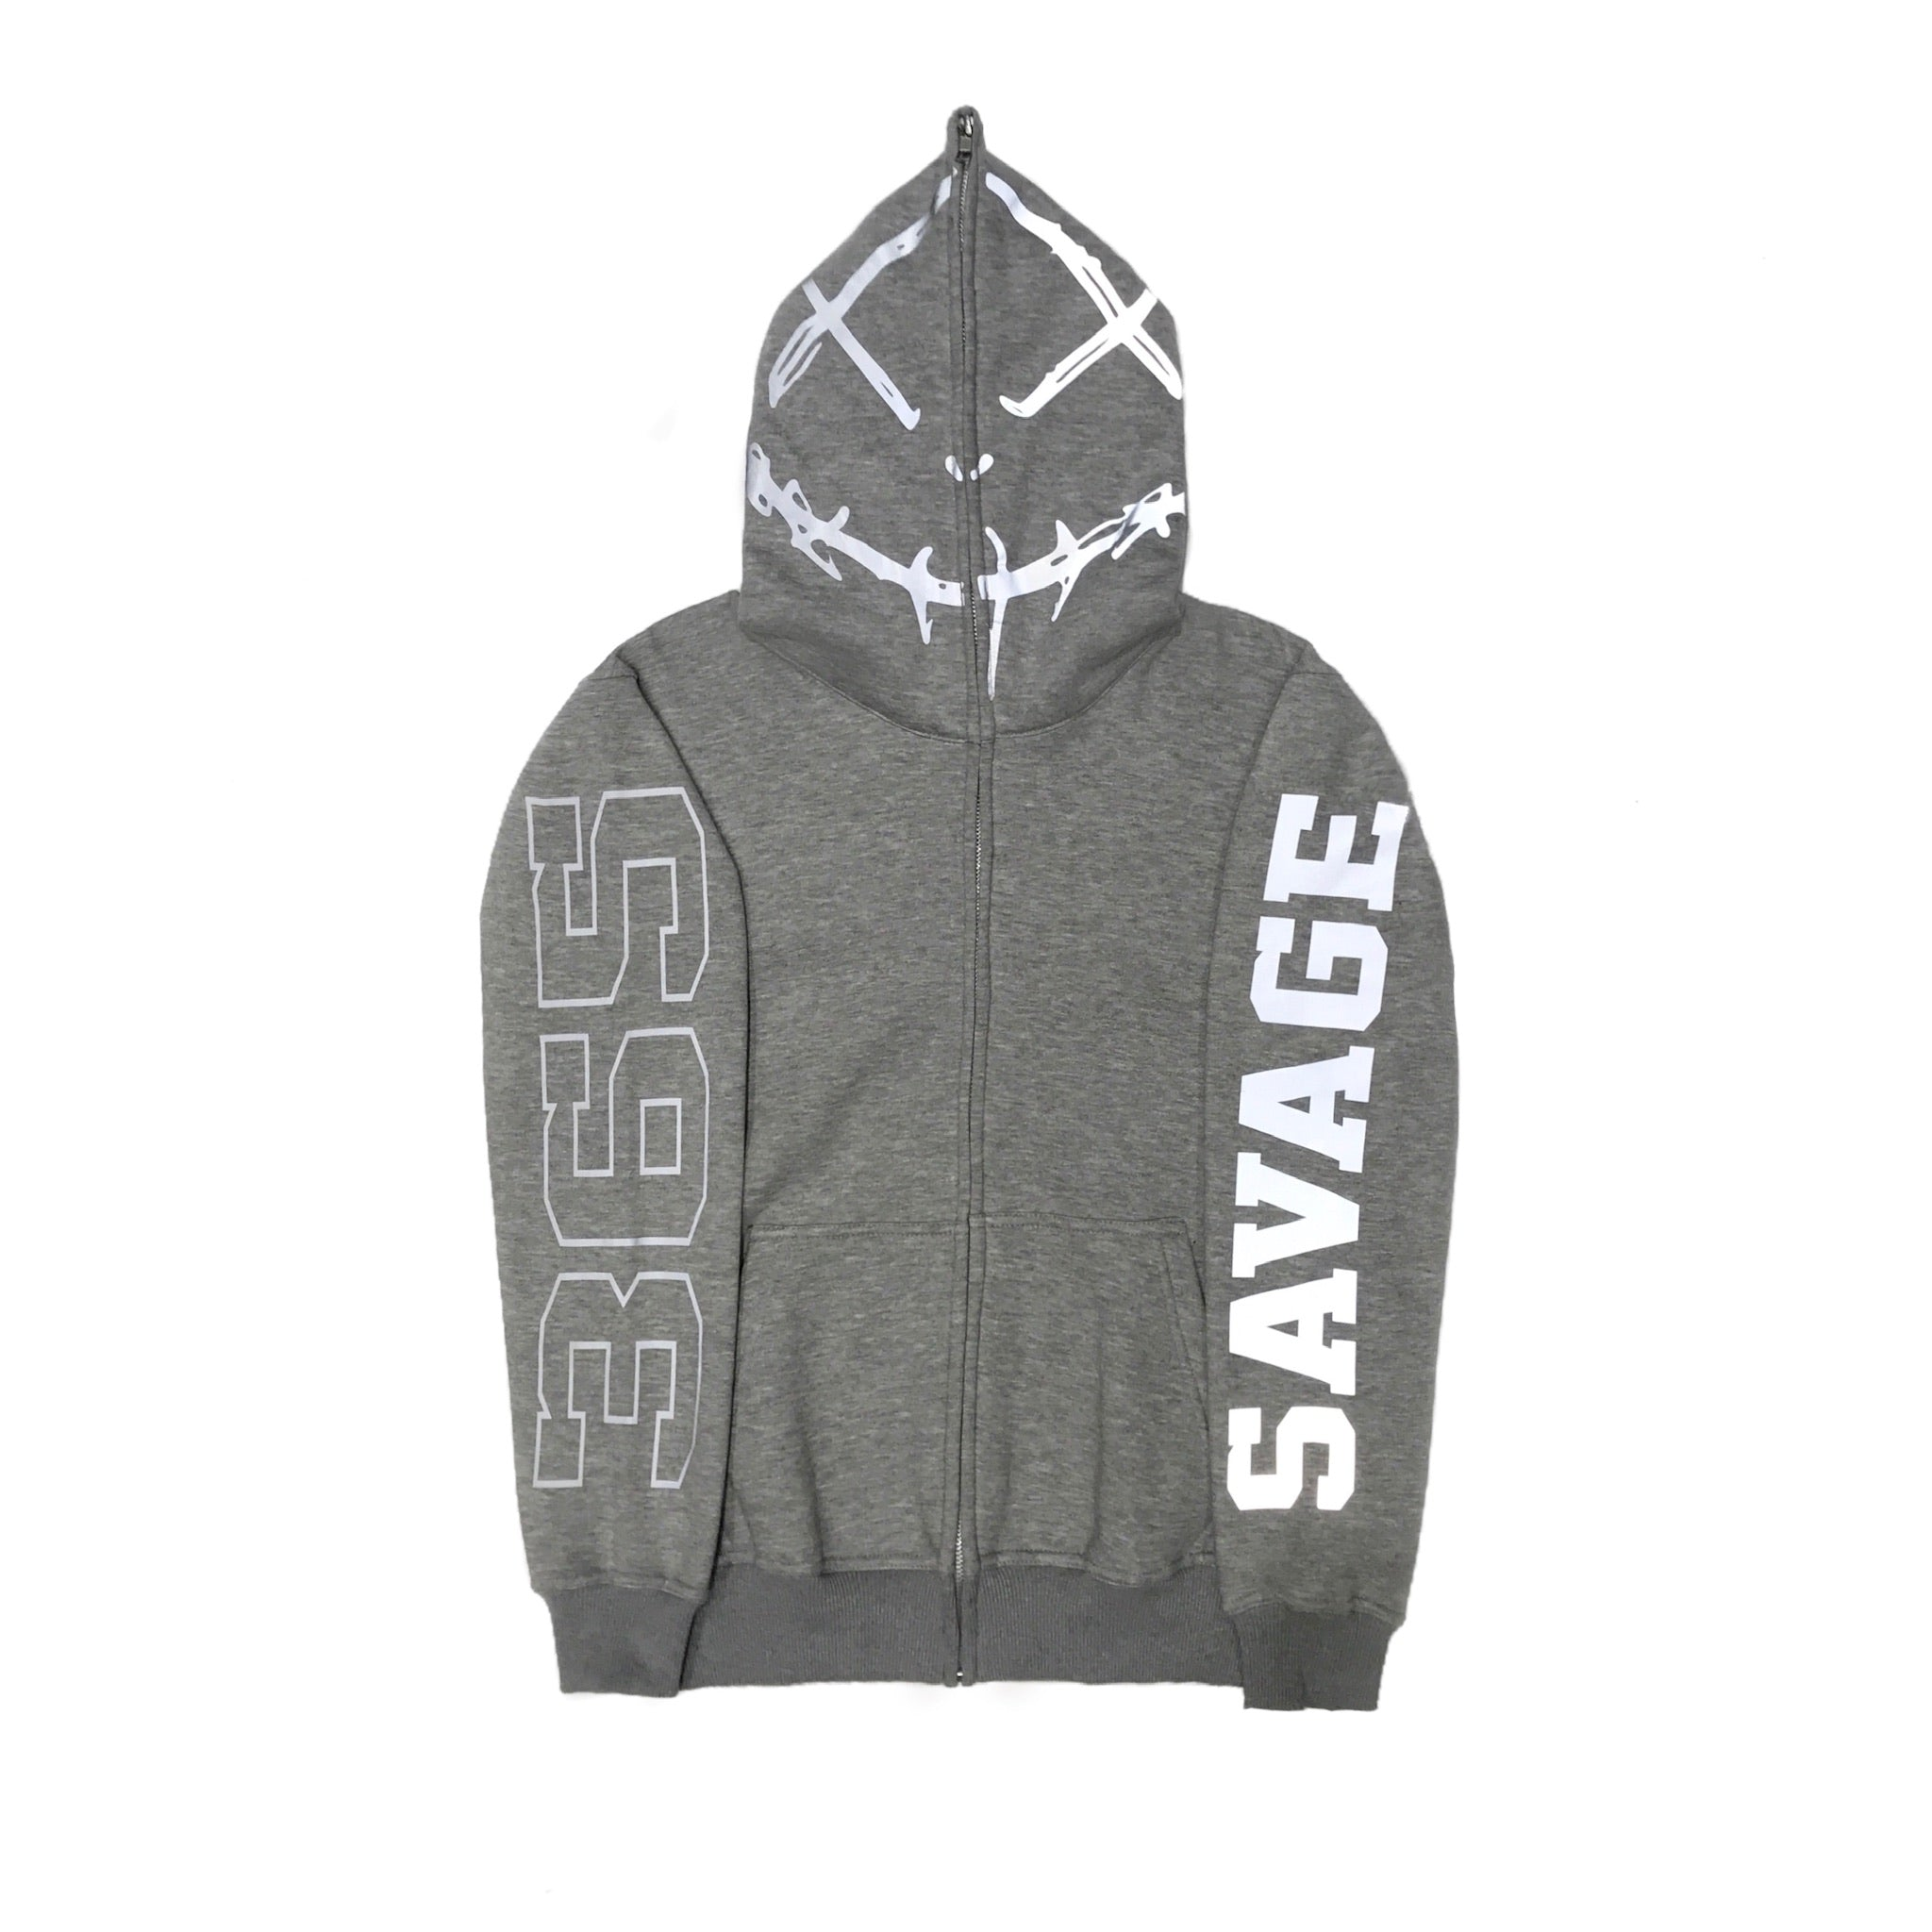 365 Clothing Savage Full Zip Up Hoodie -Grey